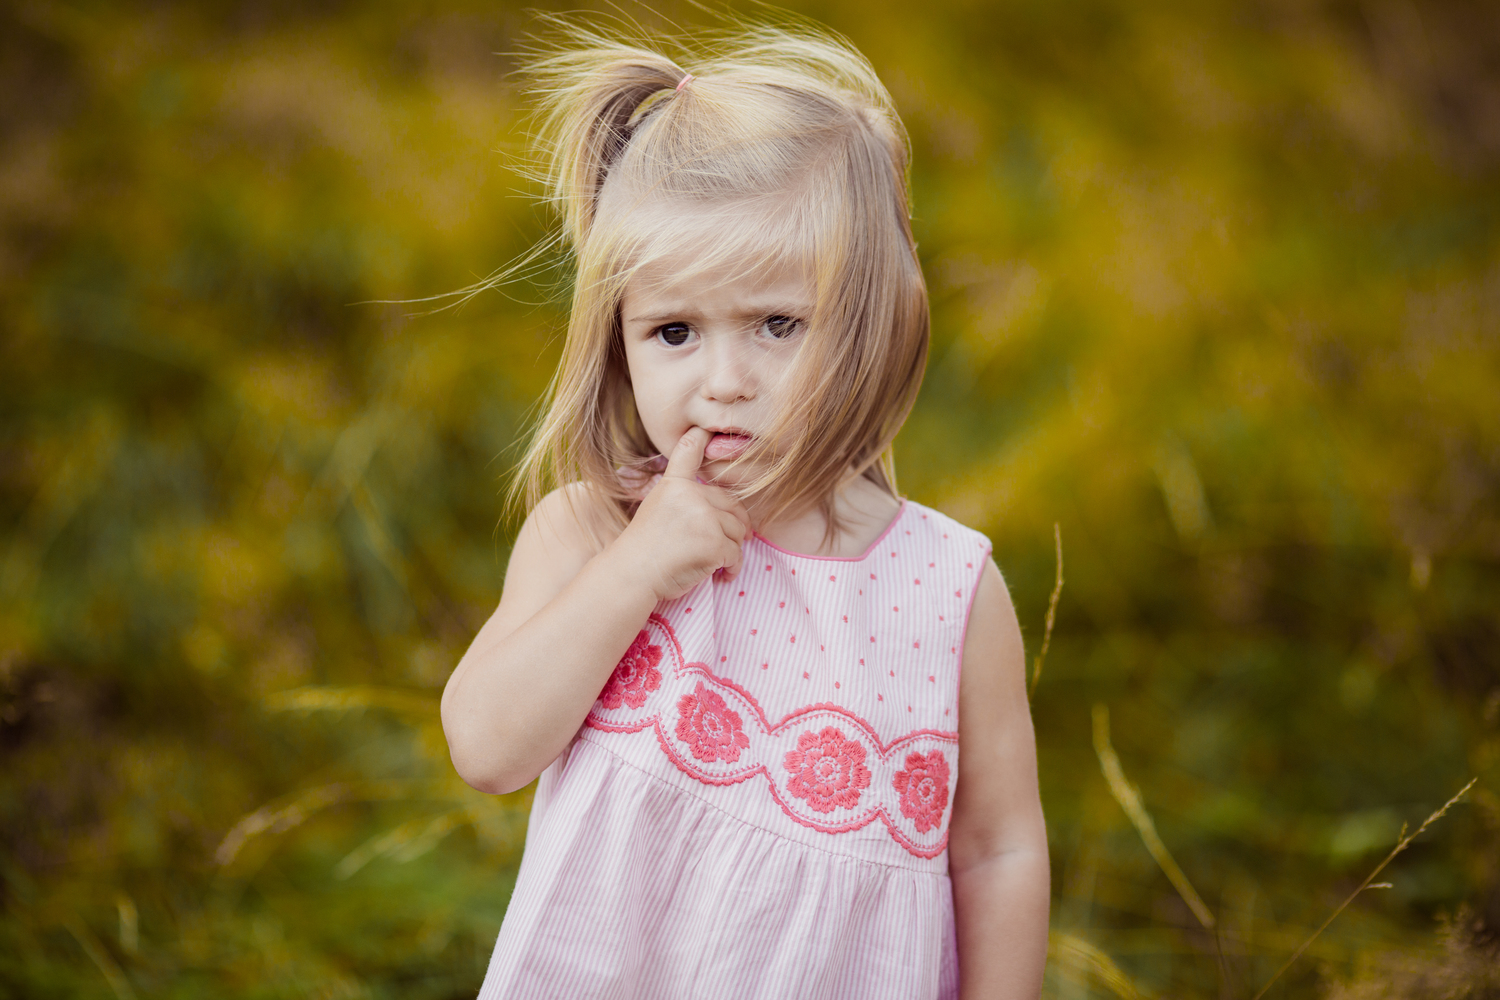 two year old girl finger in mouth | cleveland heights portraits